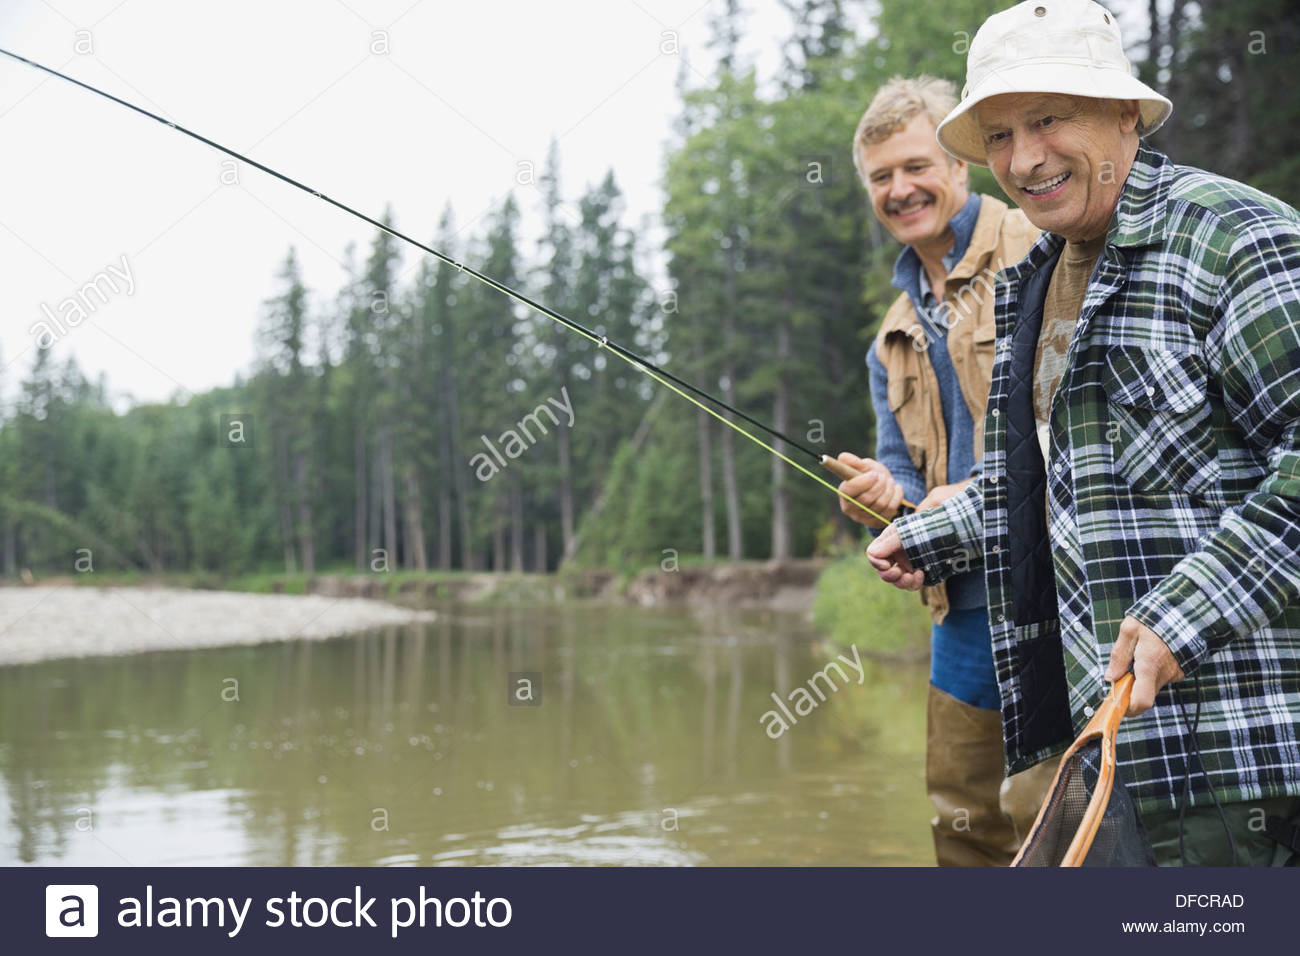 Happy senior man fishing with son - Stock Image